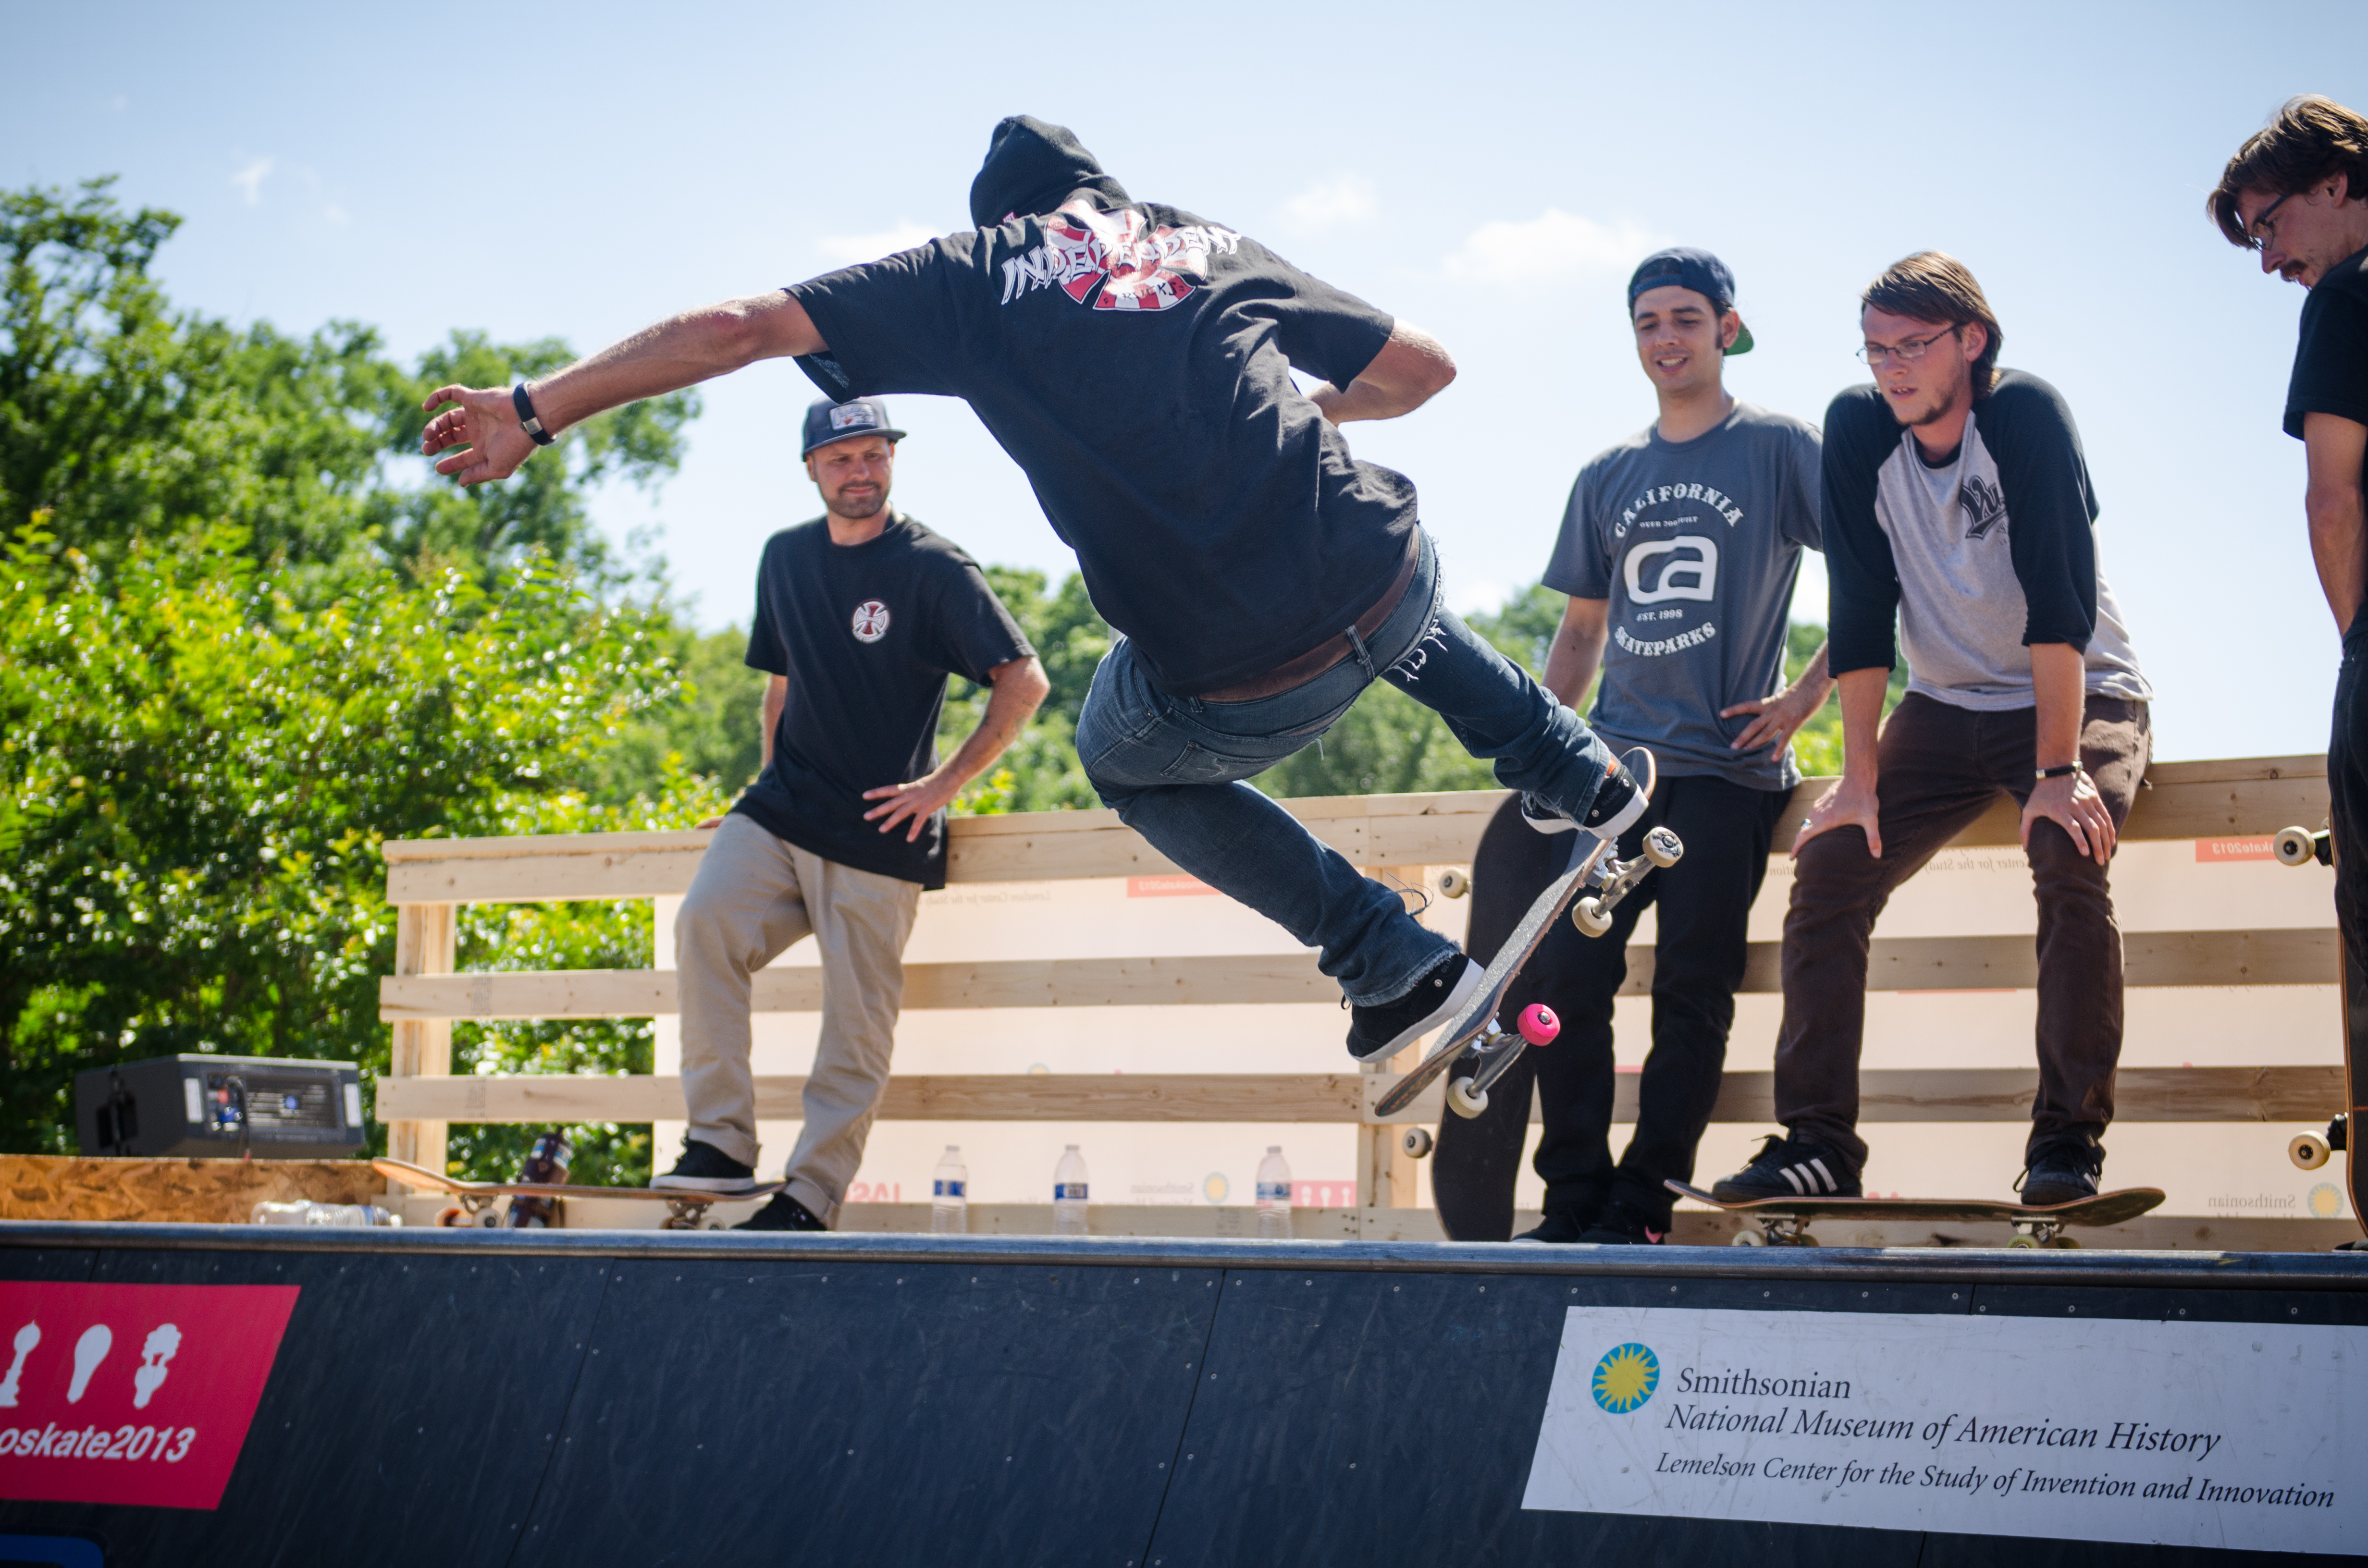 Chris Haslam was one of the many pro skateboarders who showed off their skills on the ramp we constructed outside of the Museum.